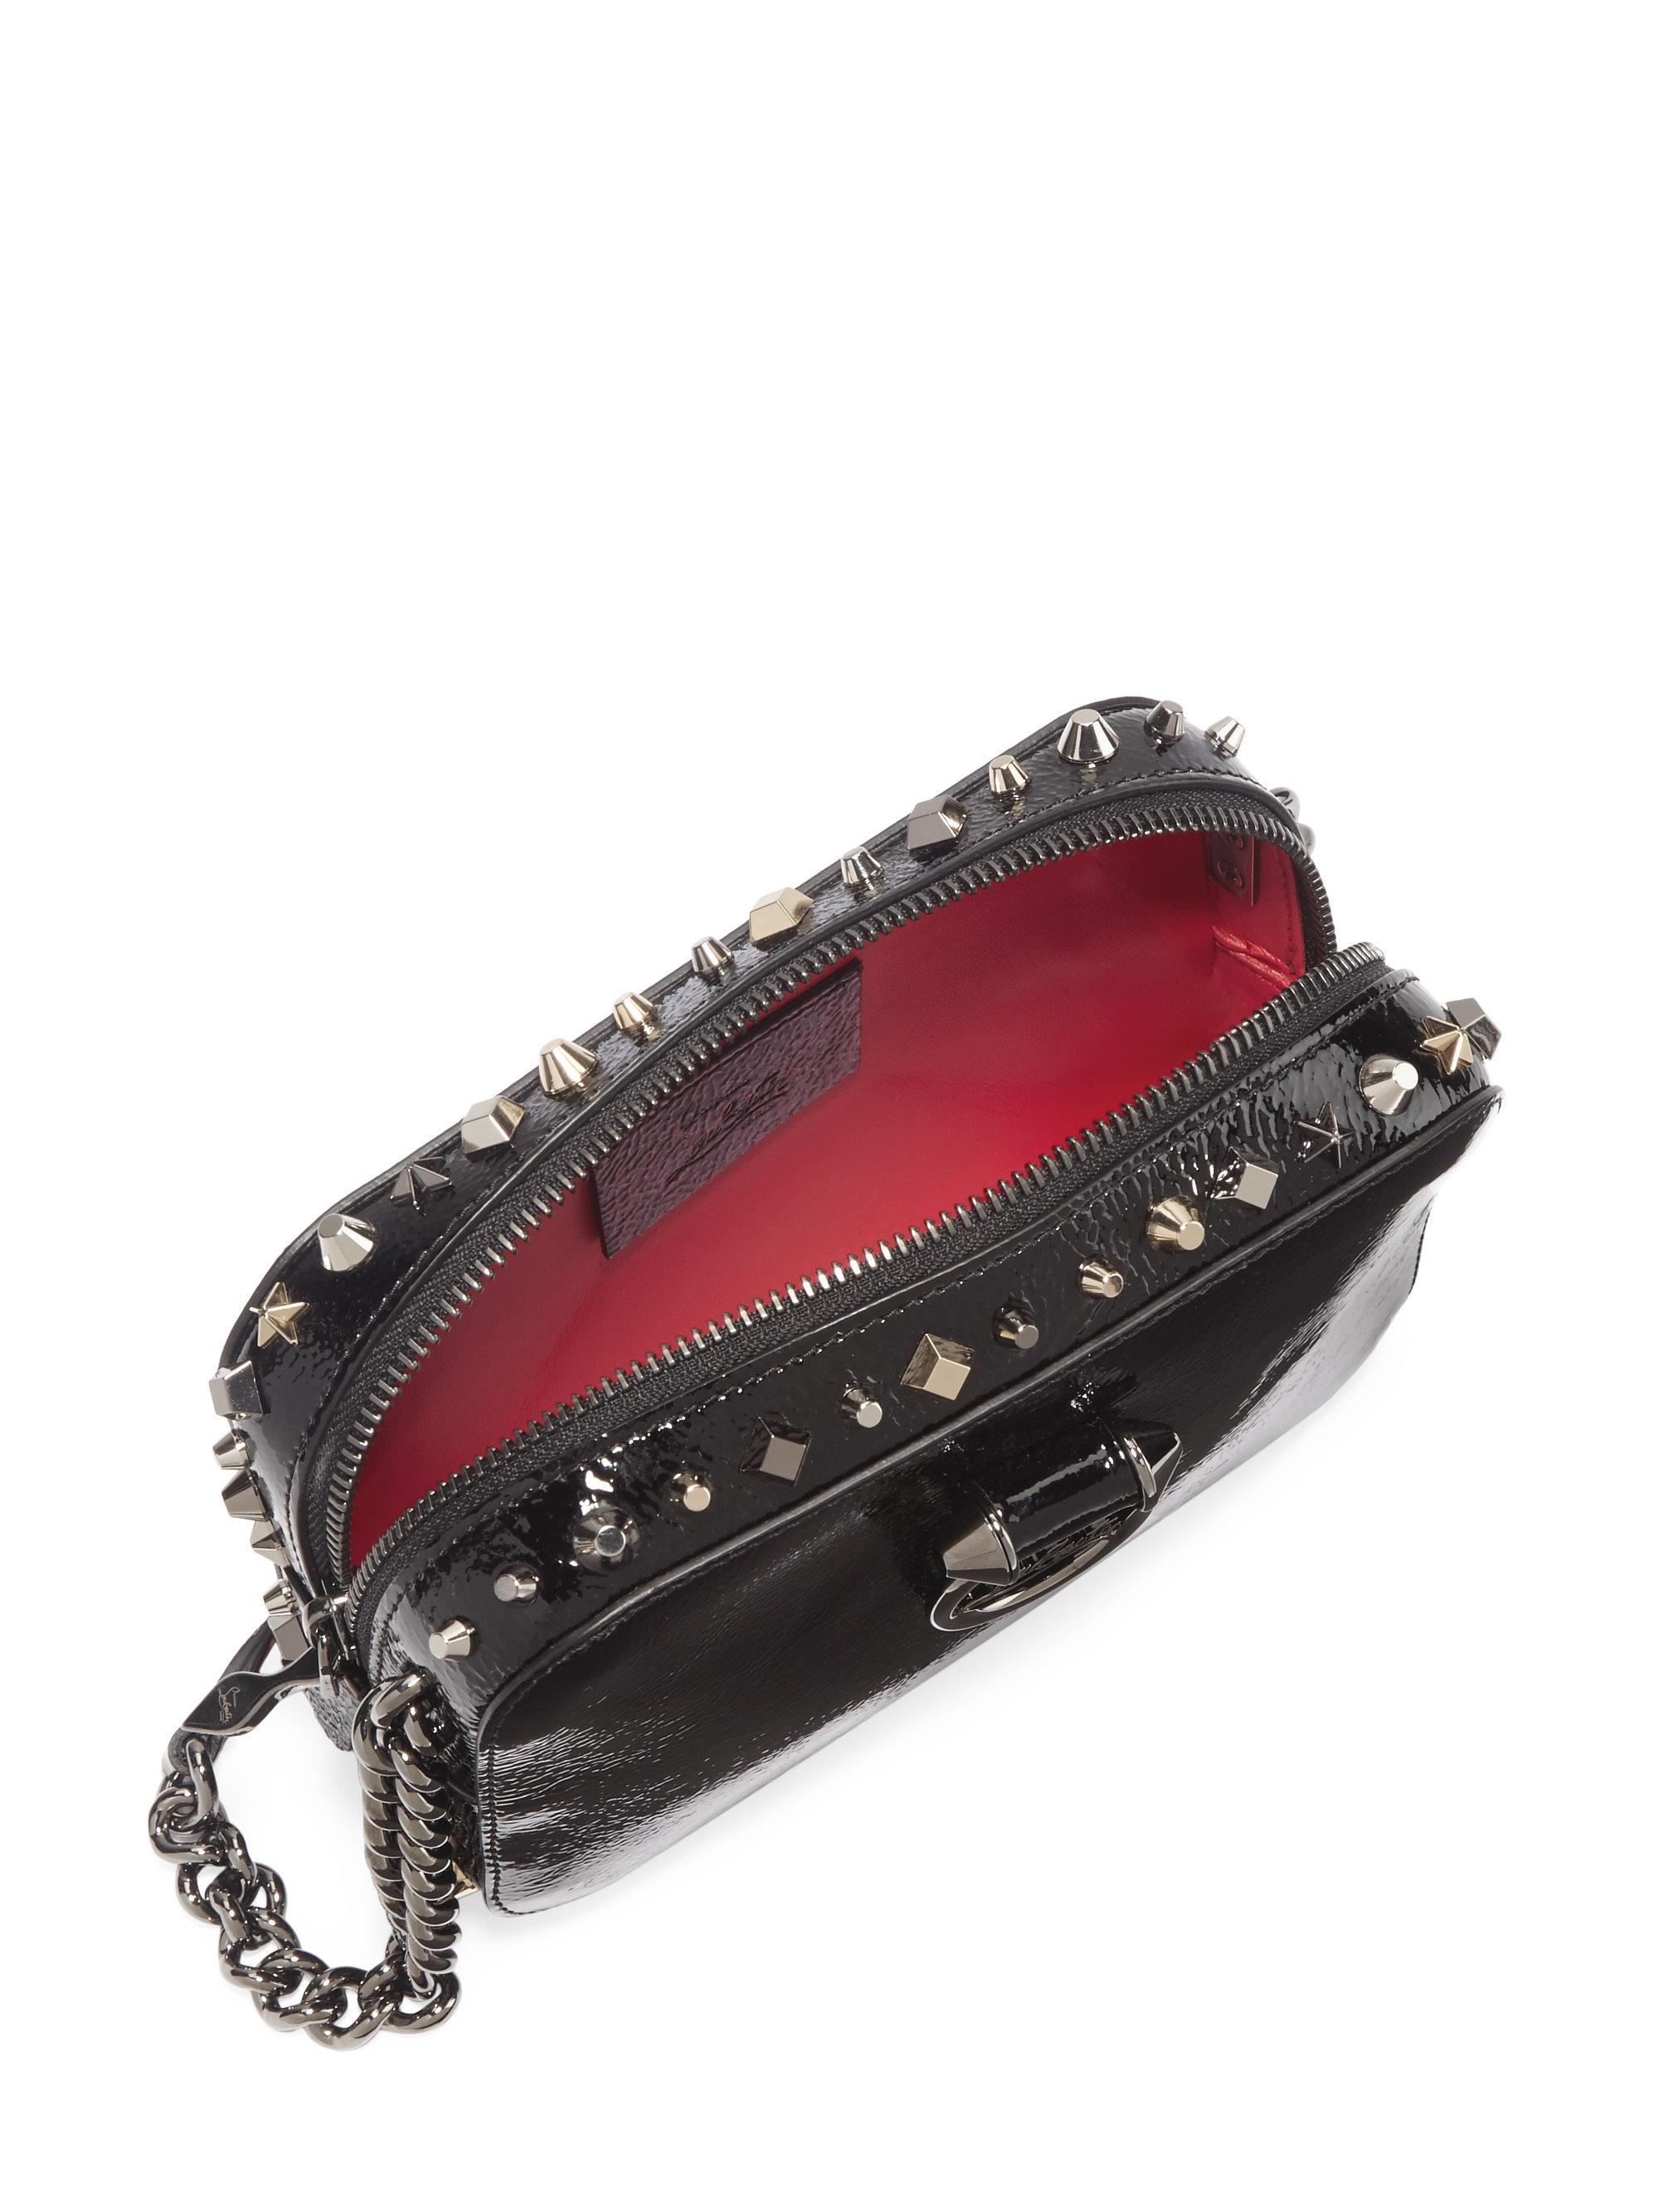 3a2a5bfee3f Christian Louboutin Black Rubylou Vintage Trashmix Patent Leather Mini  Crossbody Bag